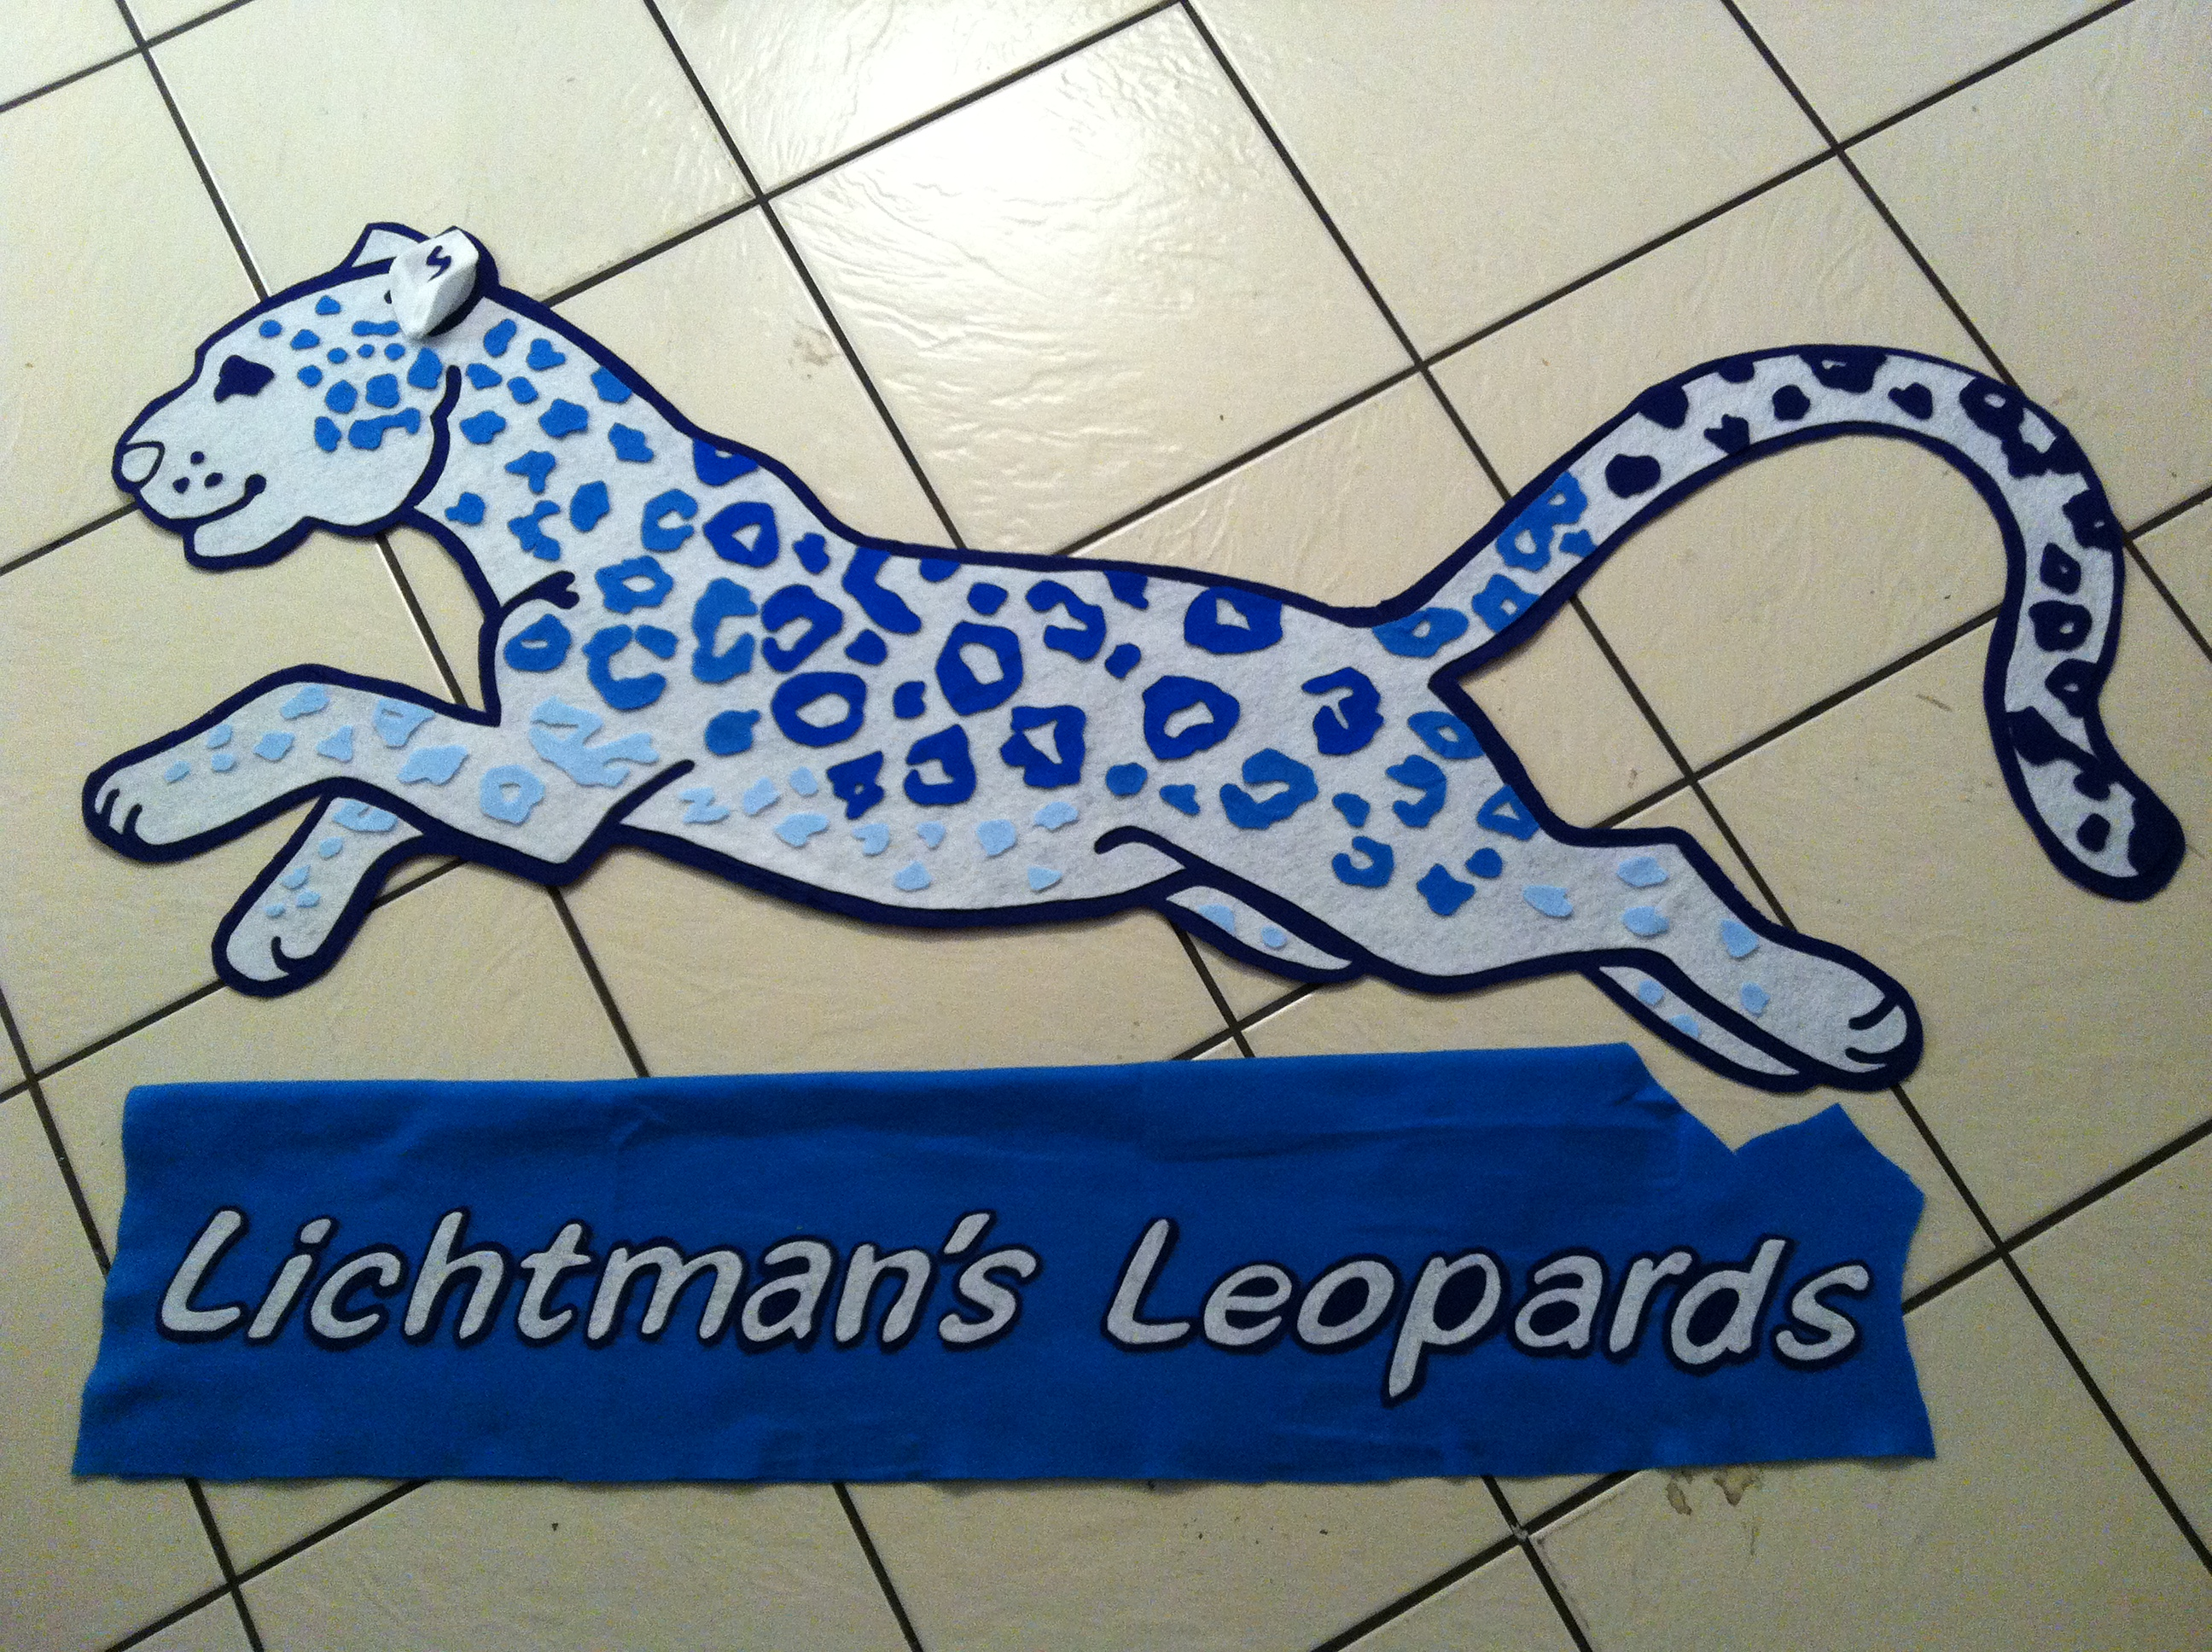 Lichtman's Leopards